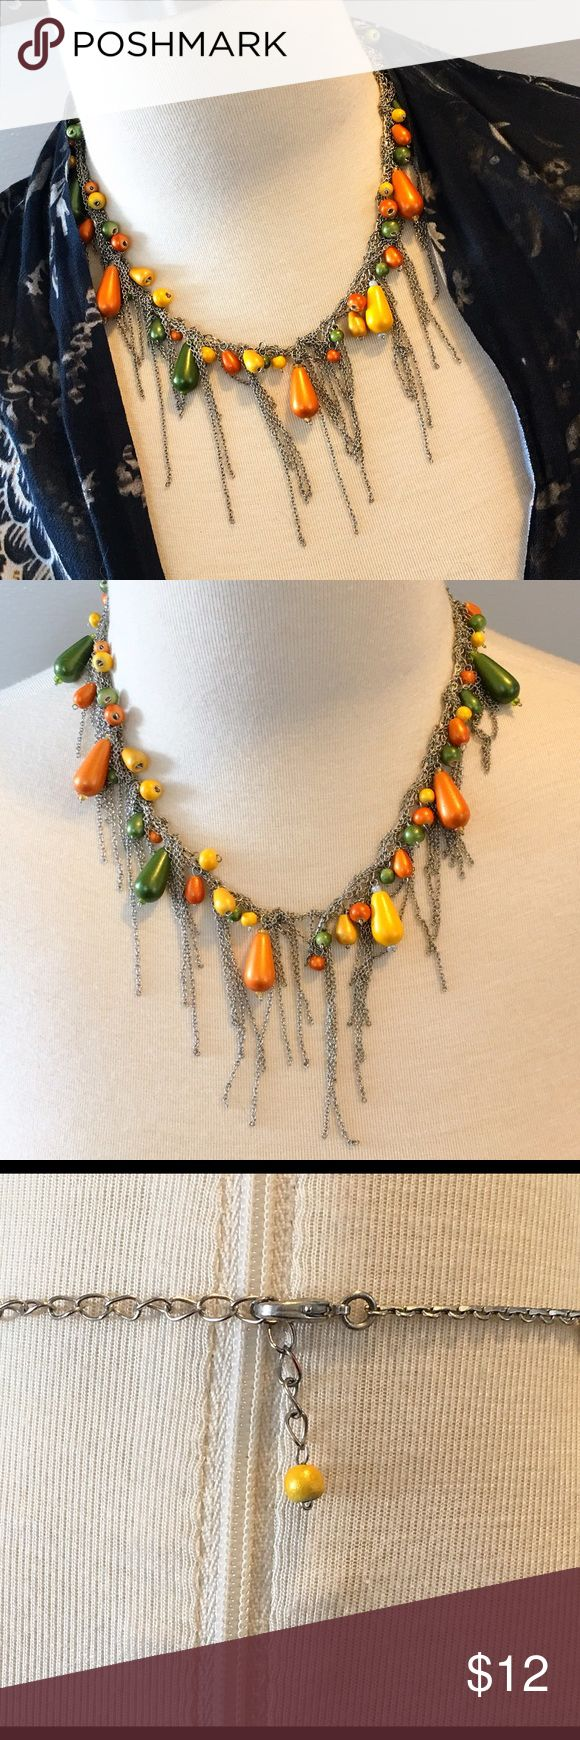 a fabulous spring time favorite necklace gently pre loved fabulous springtime favorite